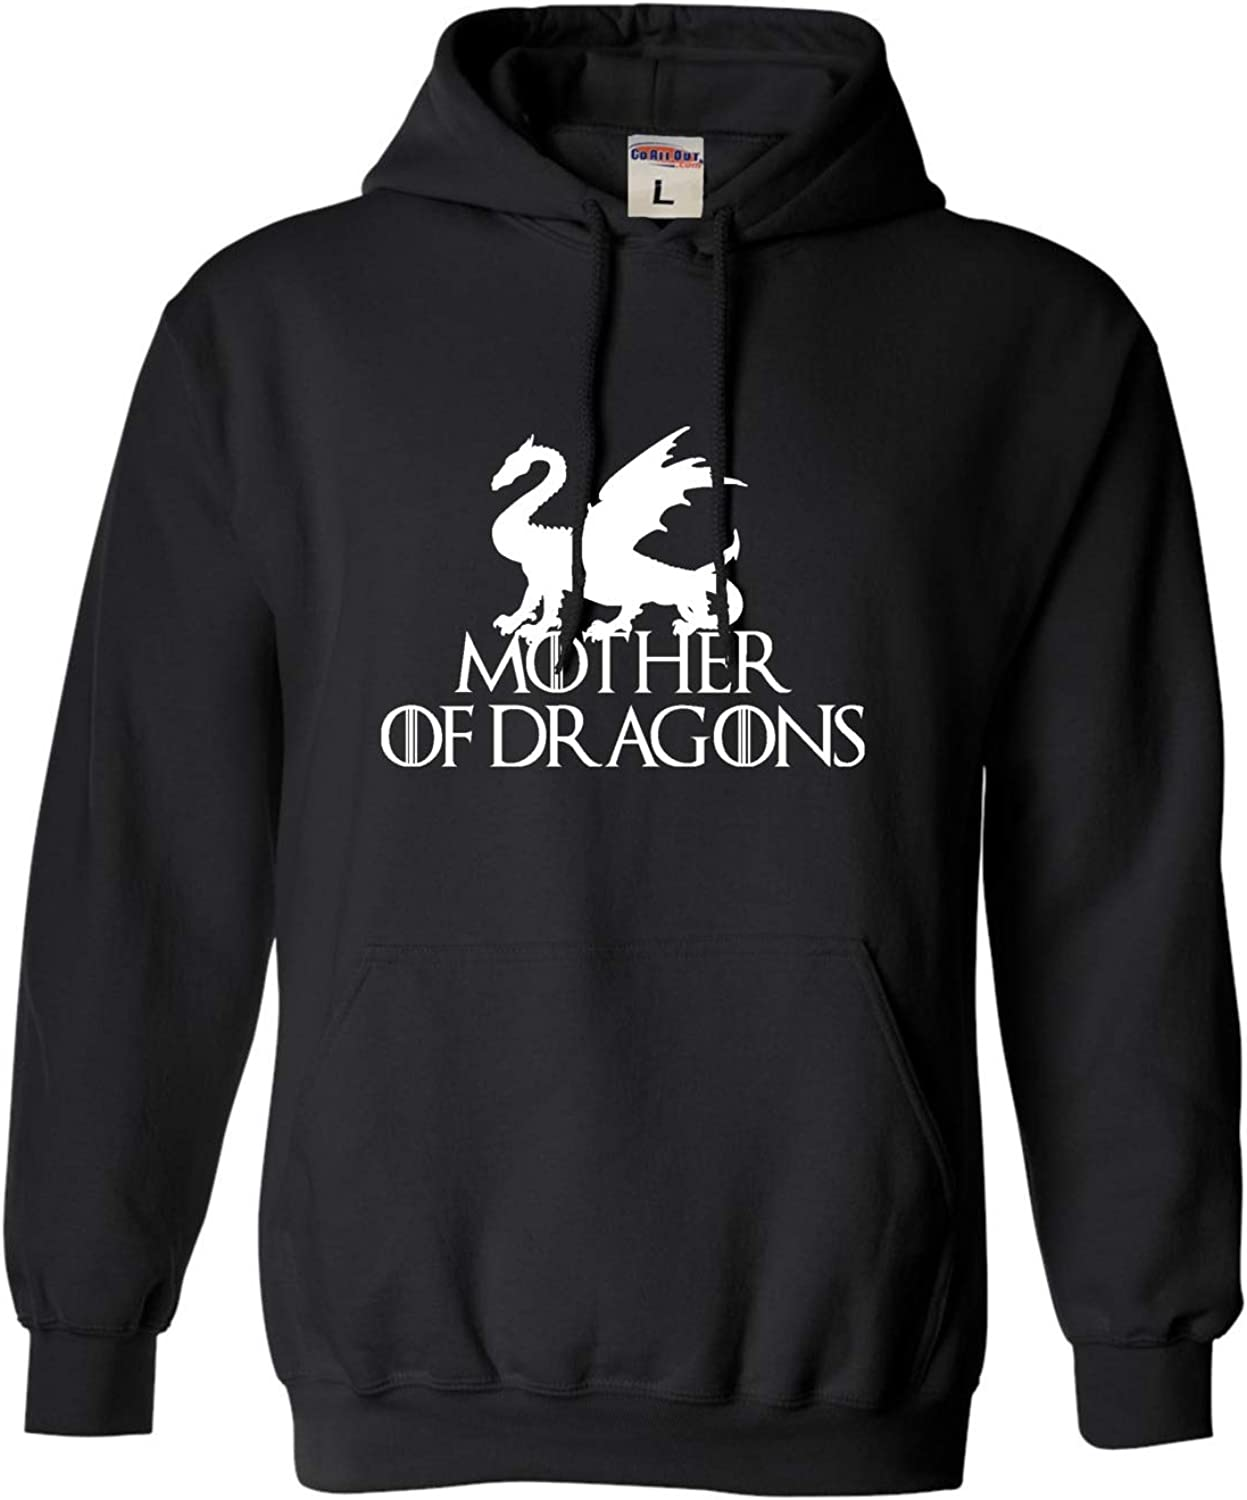 Go All Out Adult Mother Of Dragons Sweatshirt Hoodie